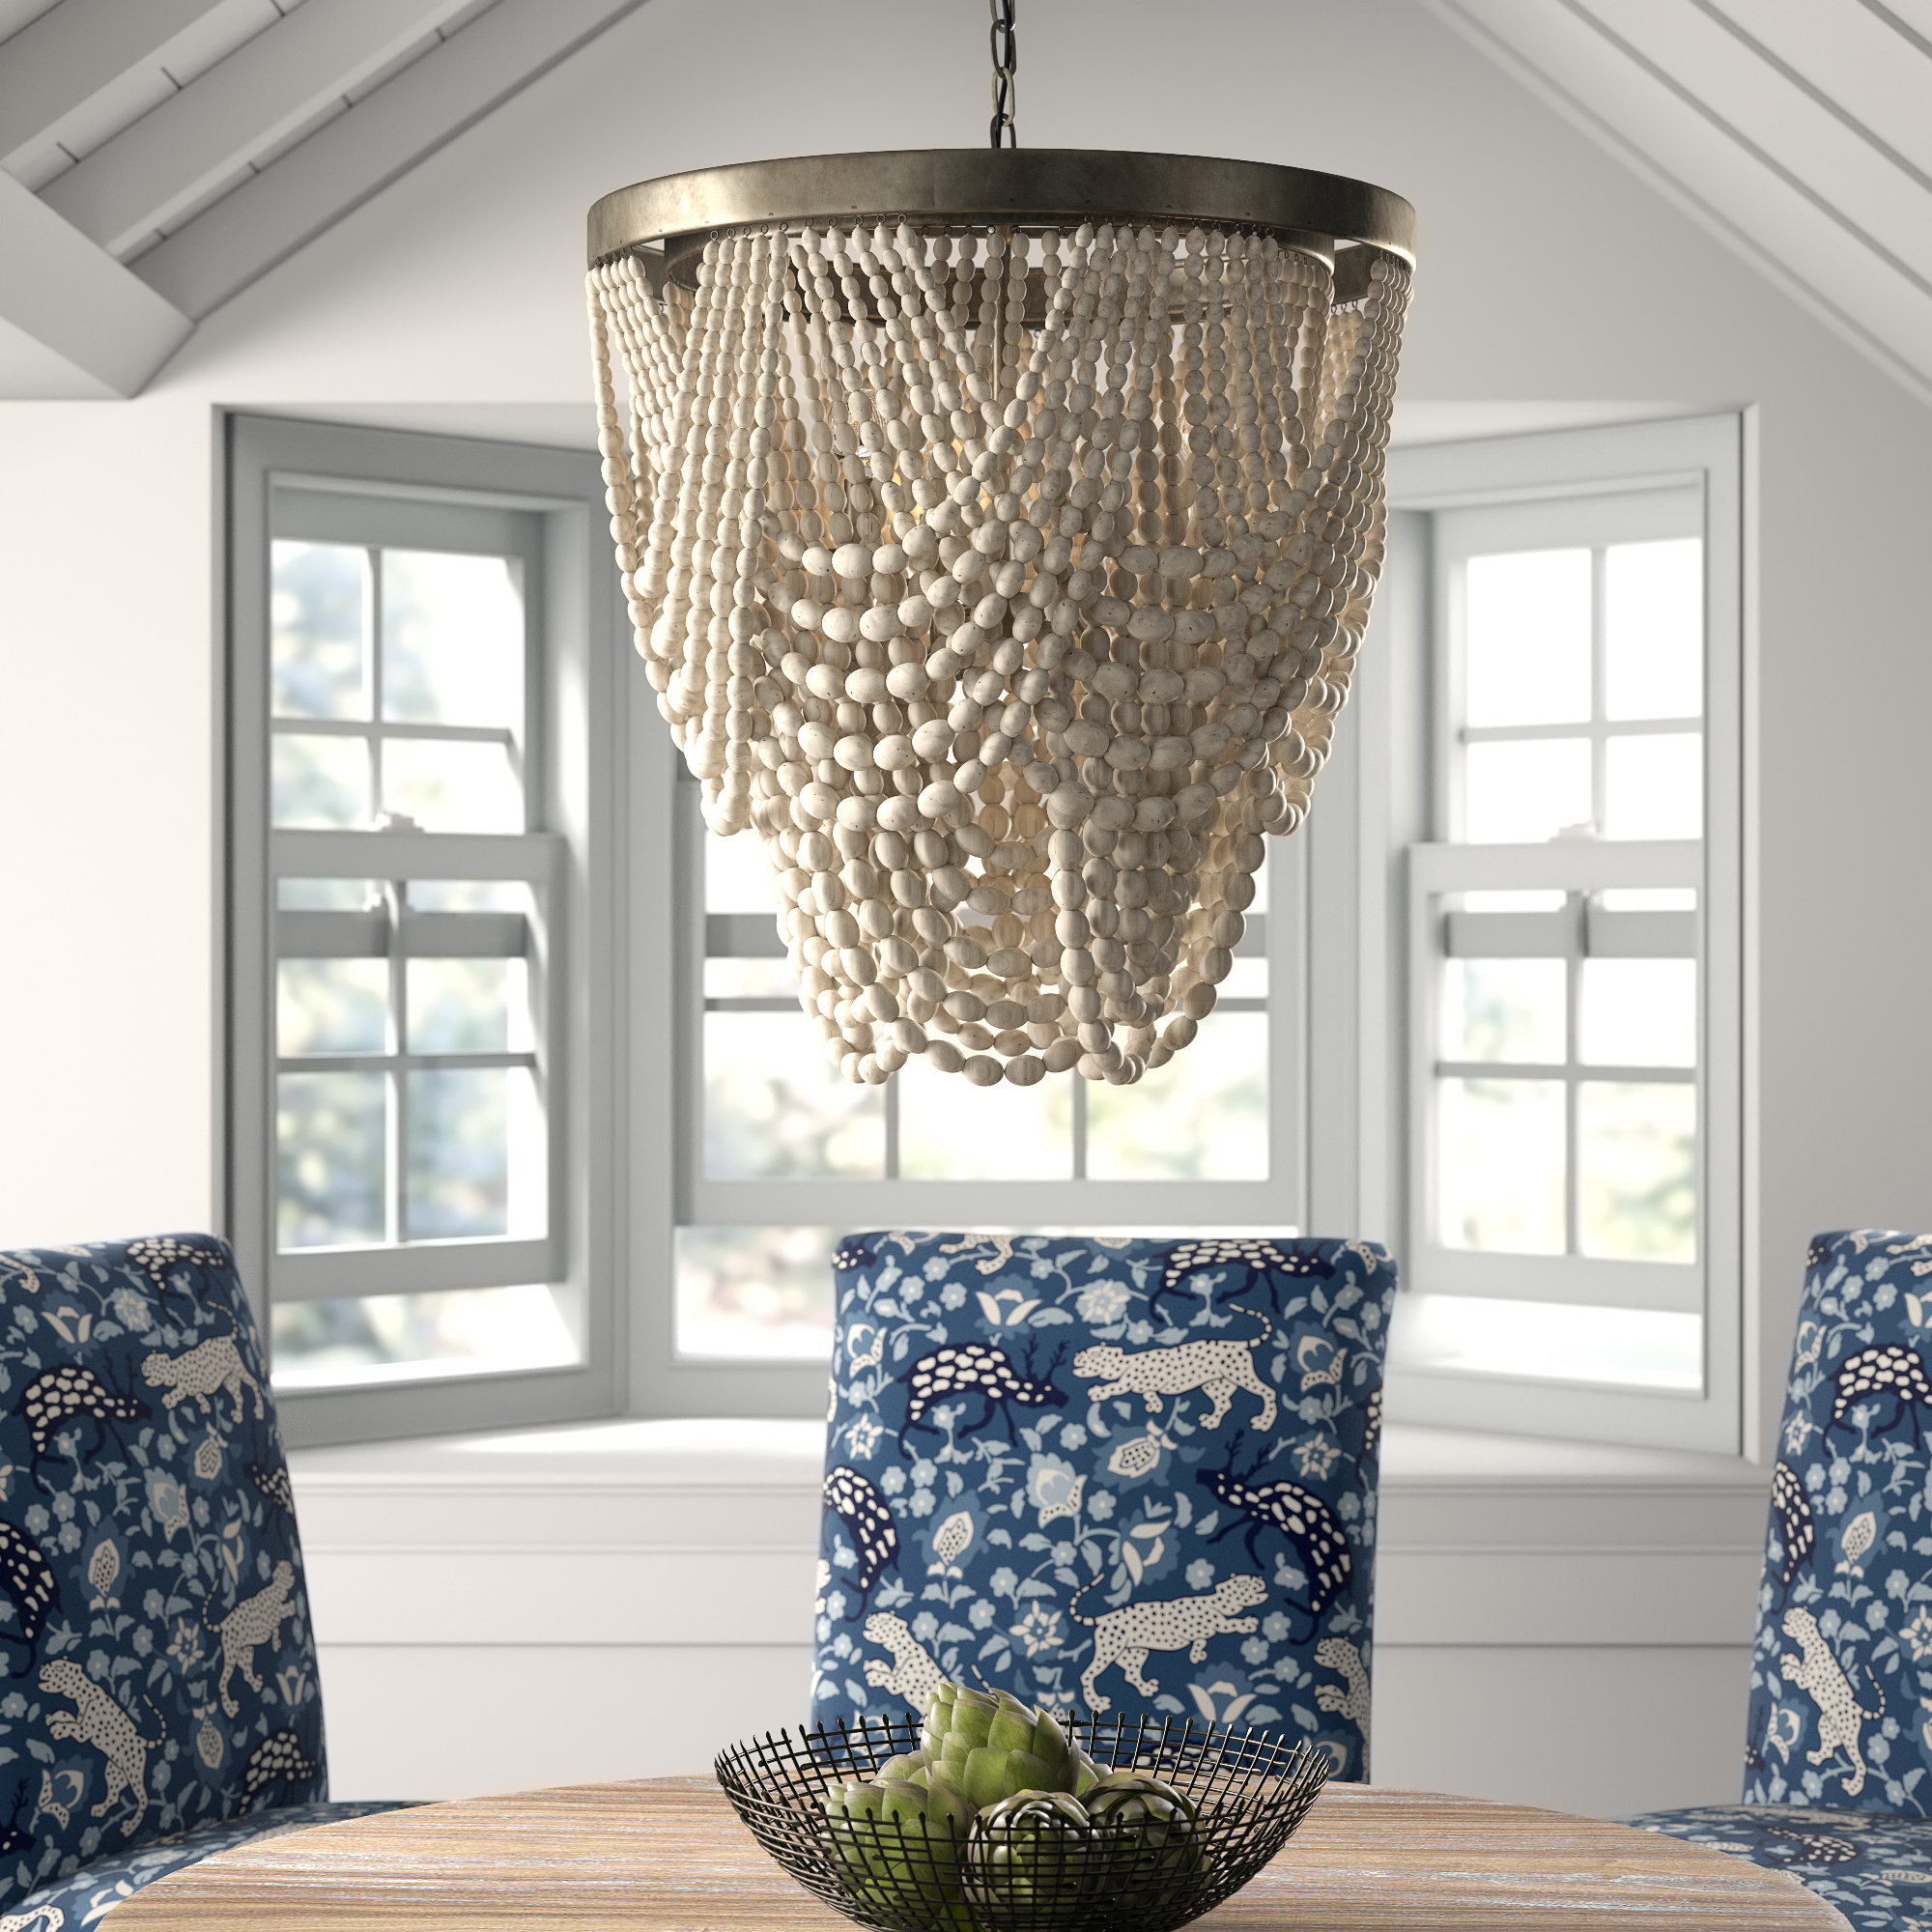 Famous Hatfield 3 Light Novelty Chandelier With Regard To Hatfield 3 Light Novelty Chandeliers (View 3 of 25)